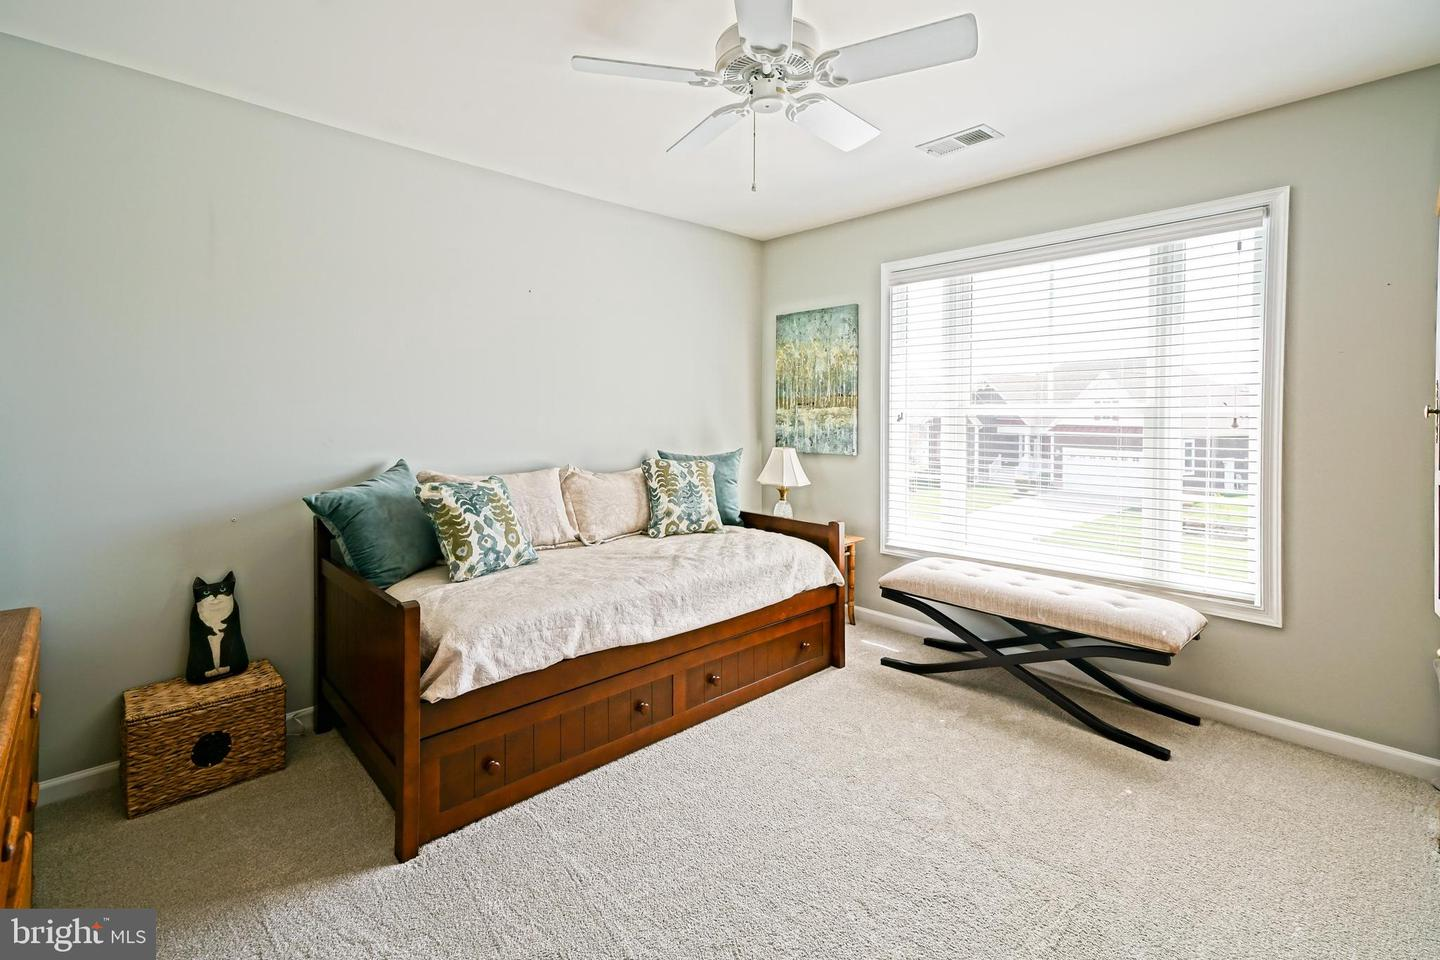 DESU139128-301667382324-2019-08-05-10-43-56 35222 Overfalls Dr N | Lewes, DE Real Estate For Sale | MLS# Desu139128  - Lee Ann Group